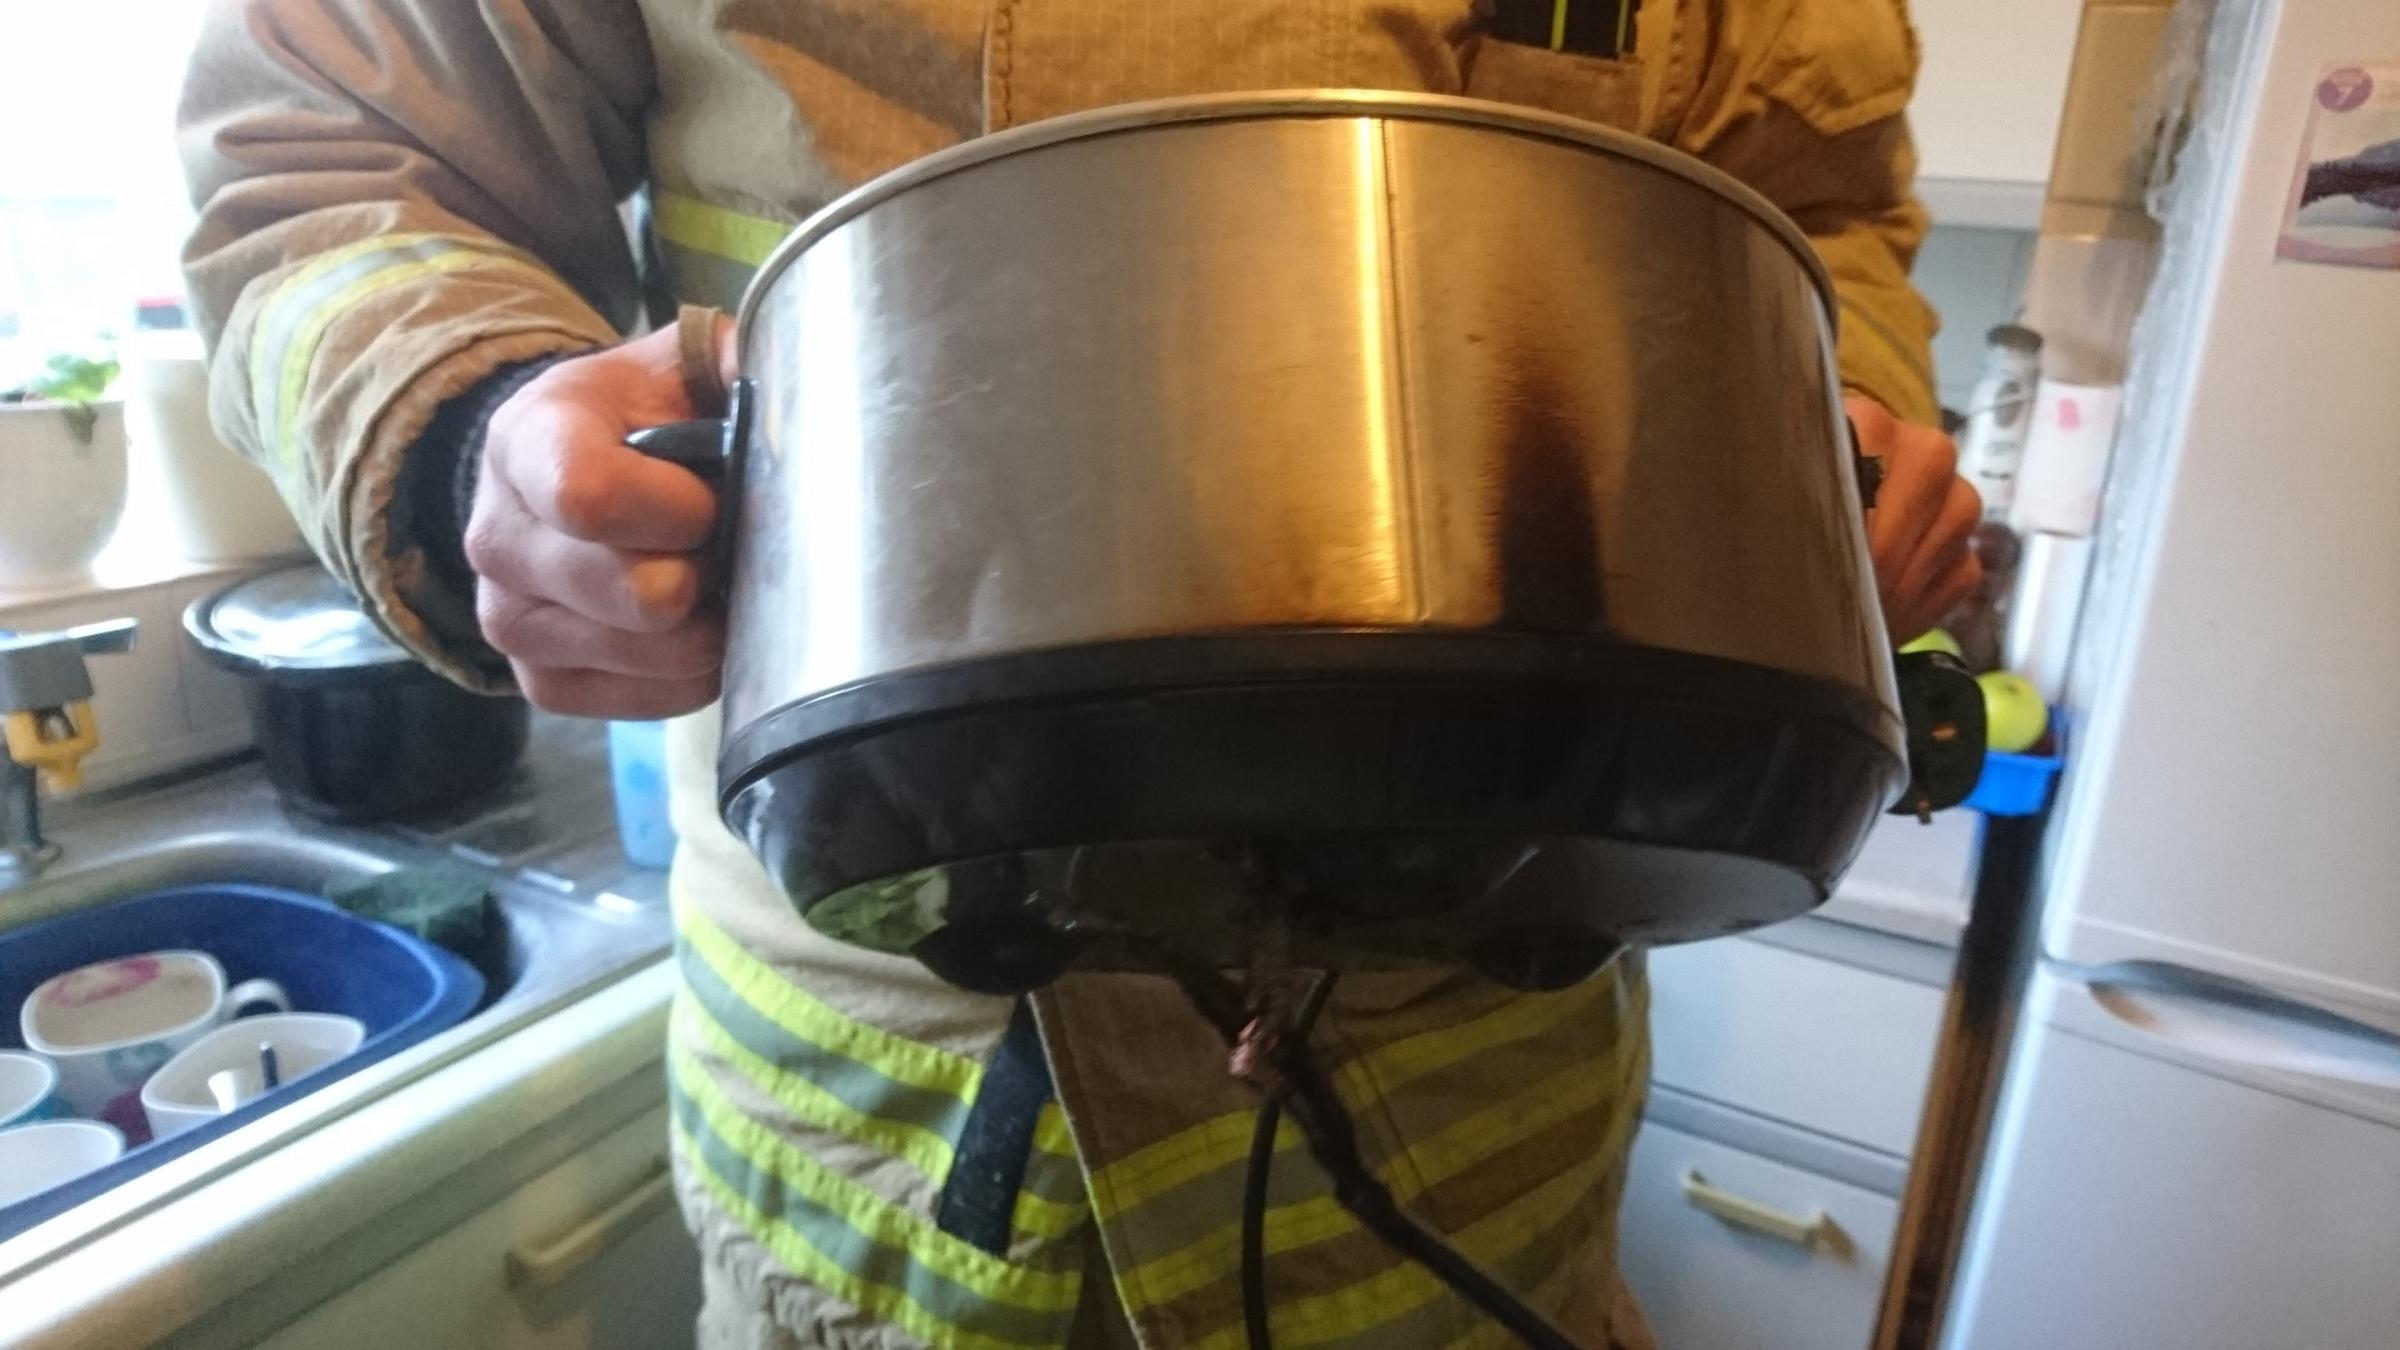 Slow cooker catches fire after being left on top of a hob